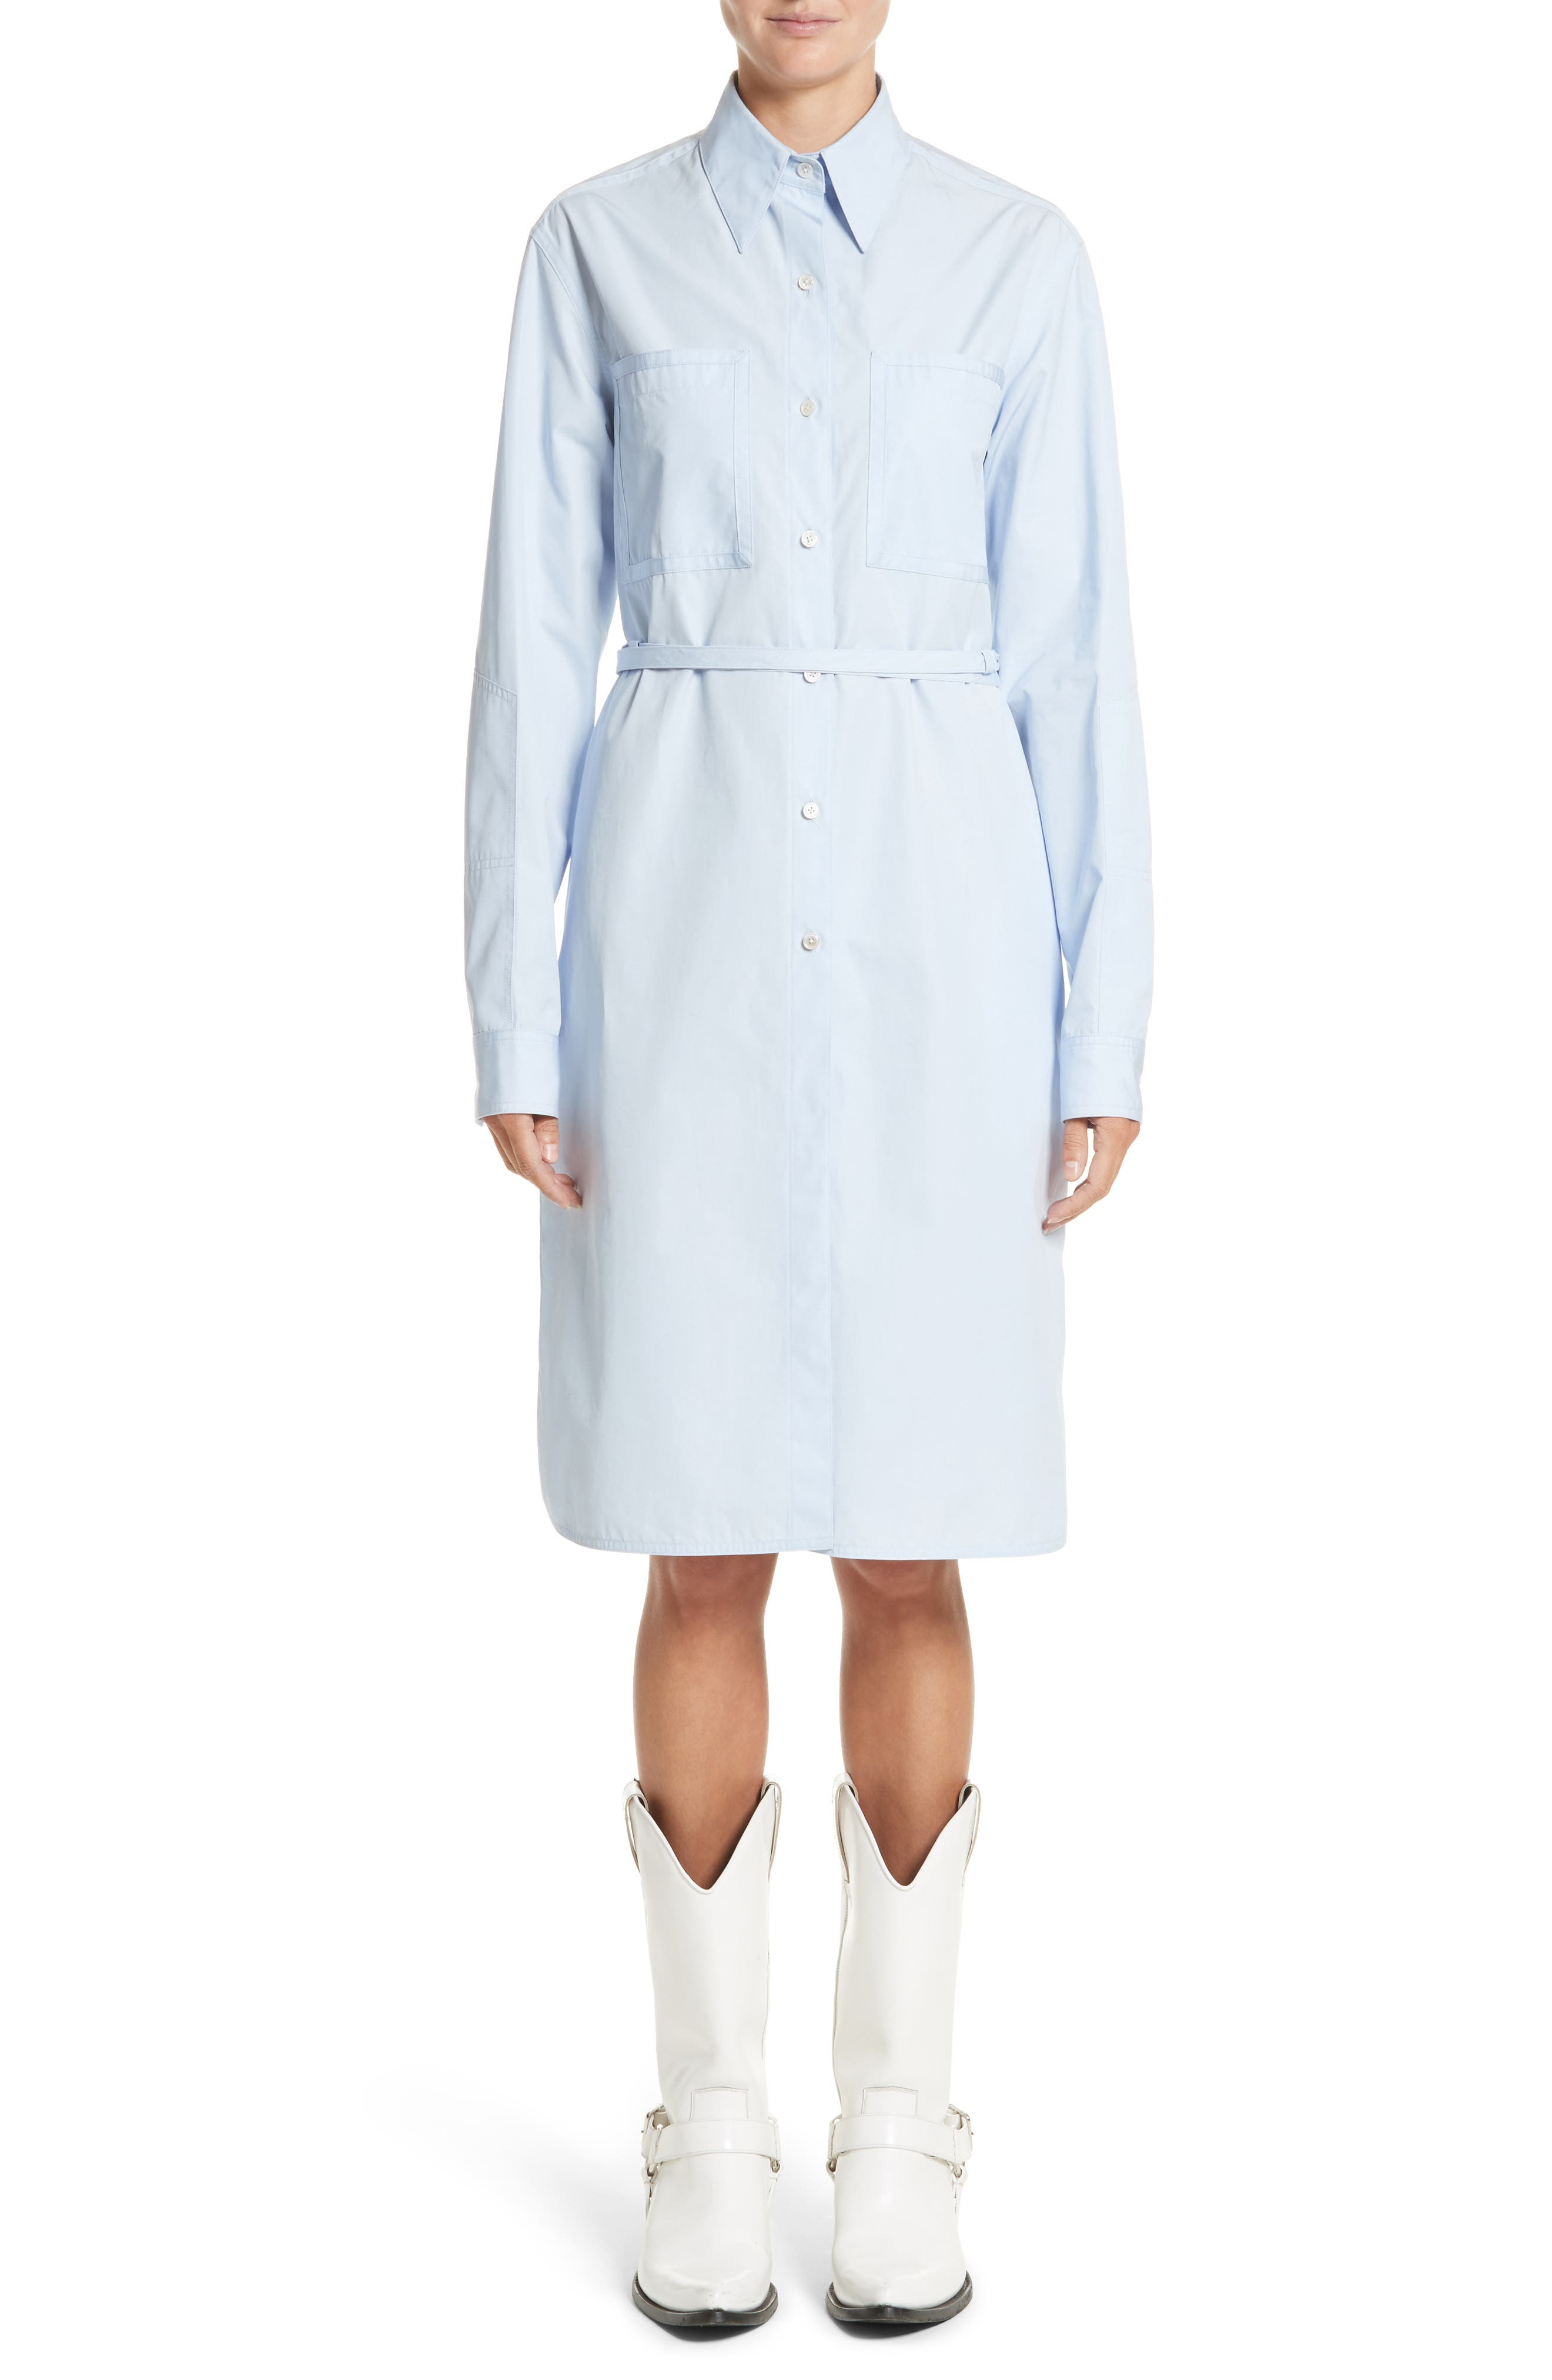 Alternate Image 1 Selected - CALVIN KLEIN 205W39NYC Lace-Up Back Cotton Poplin Dress